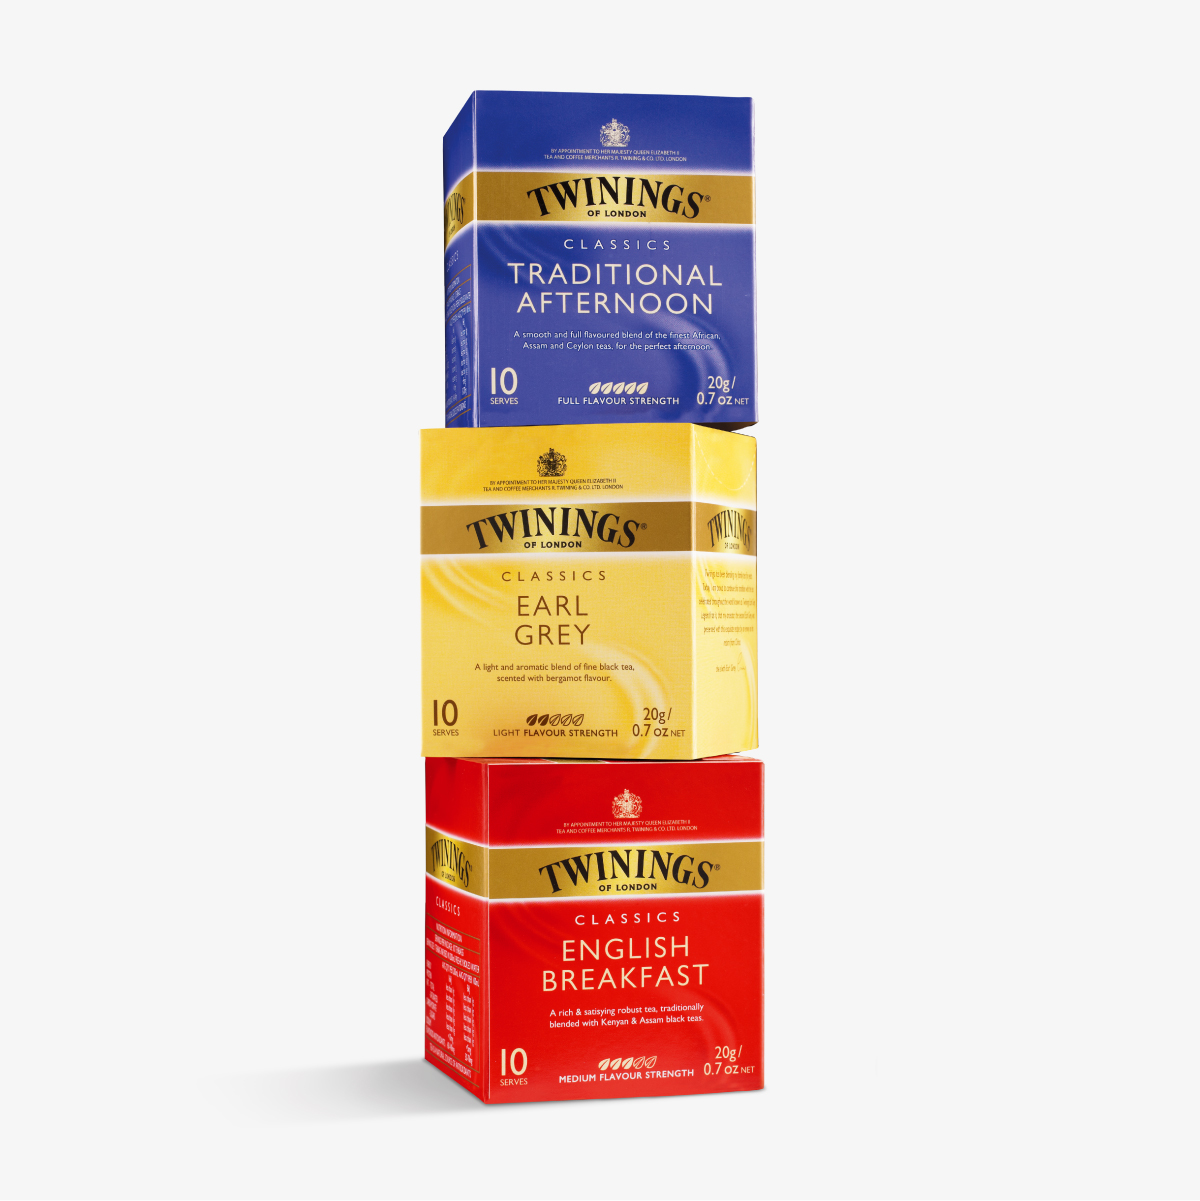 Twinings Packaging